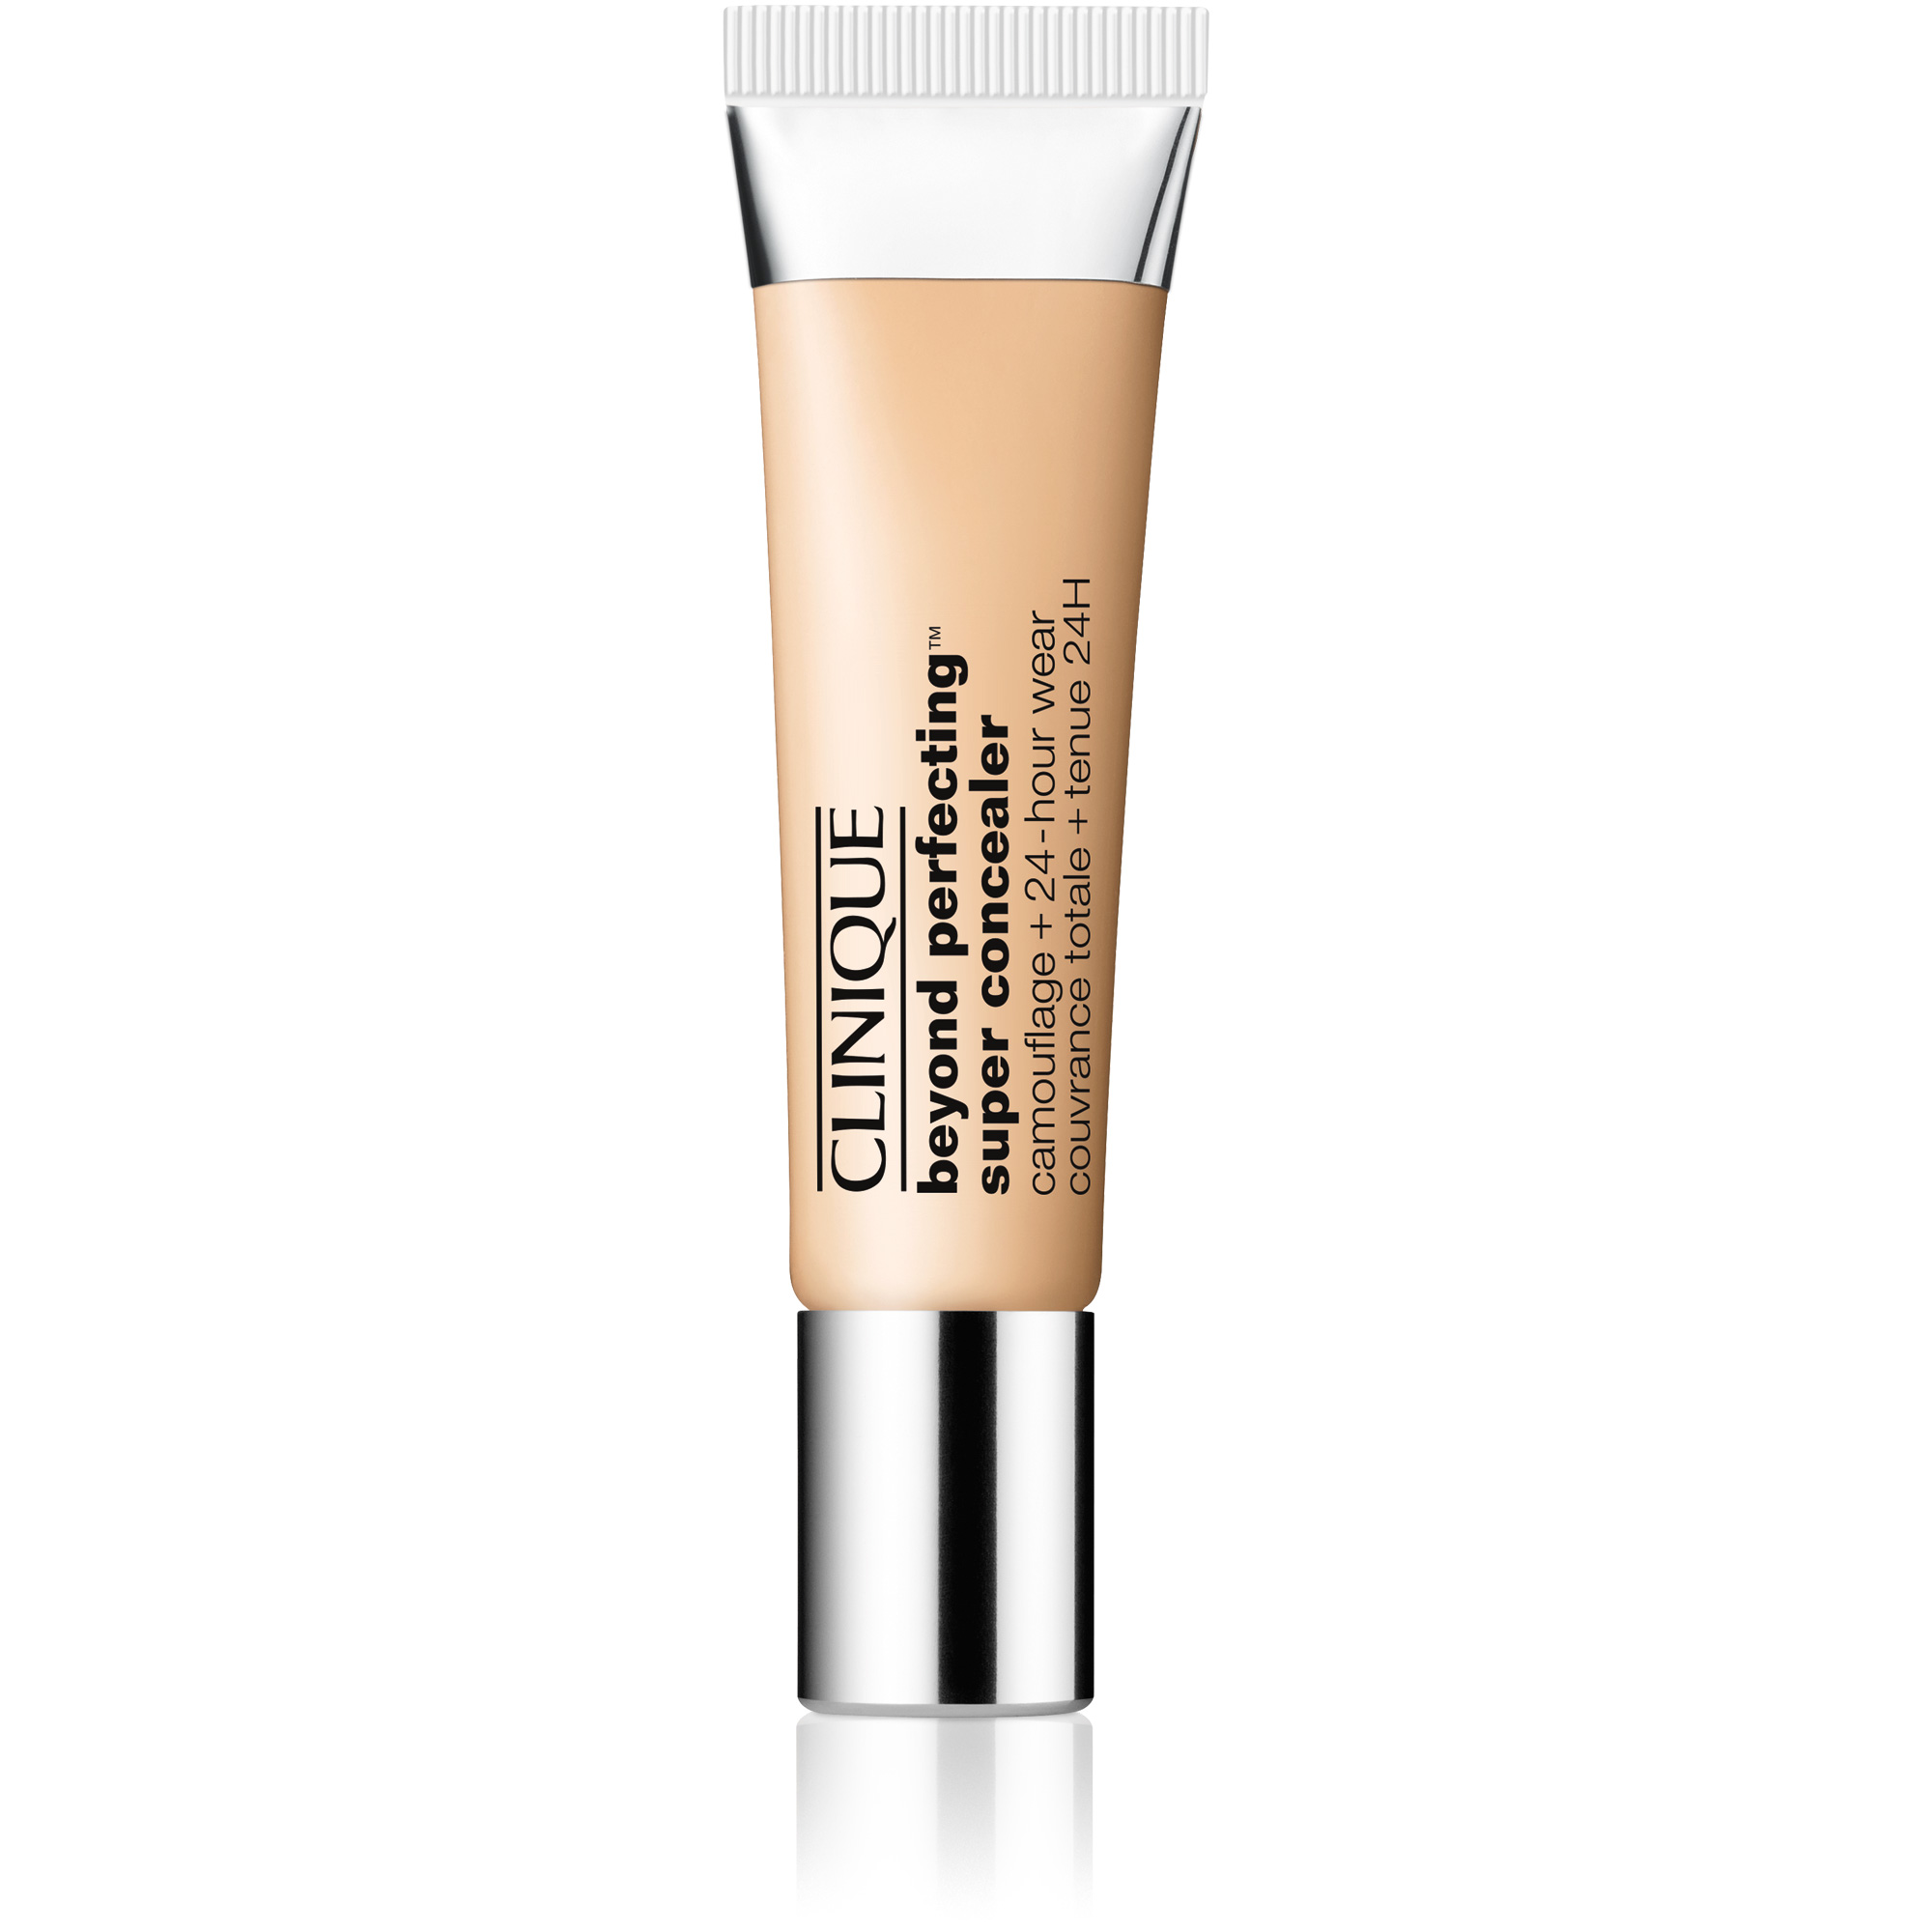 Beyond Perfecting Super Concealer Camouflage & 24Hr Wear Concealer 04 Very Fair